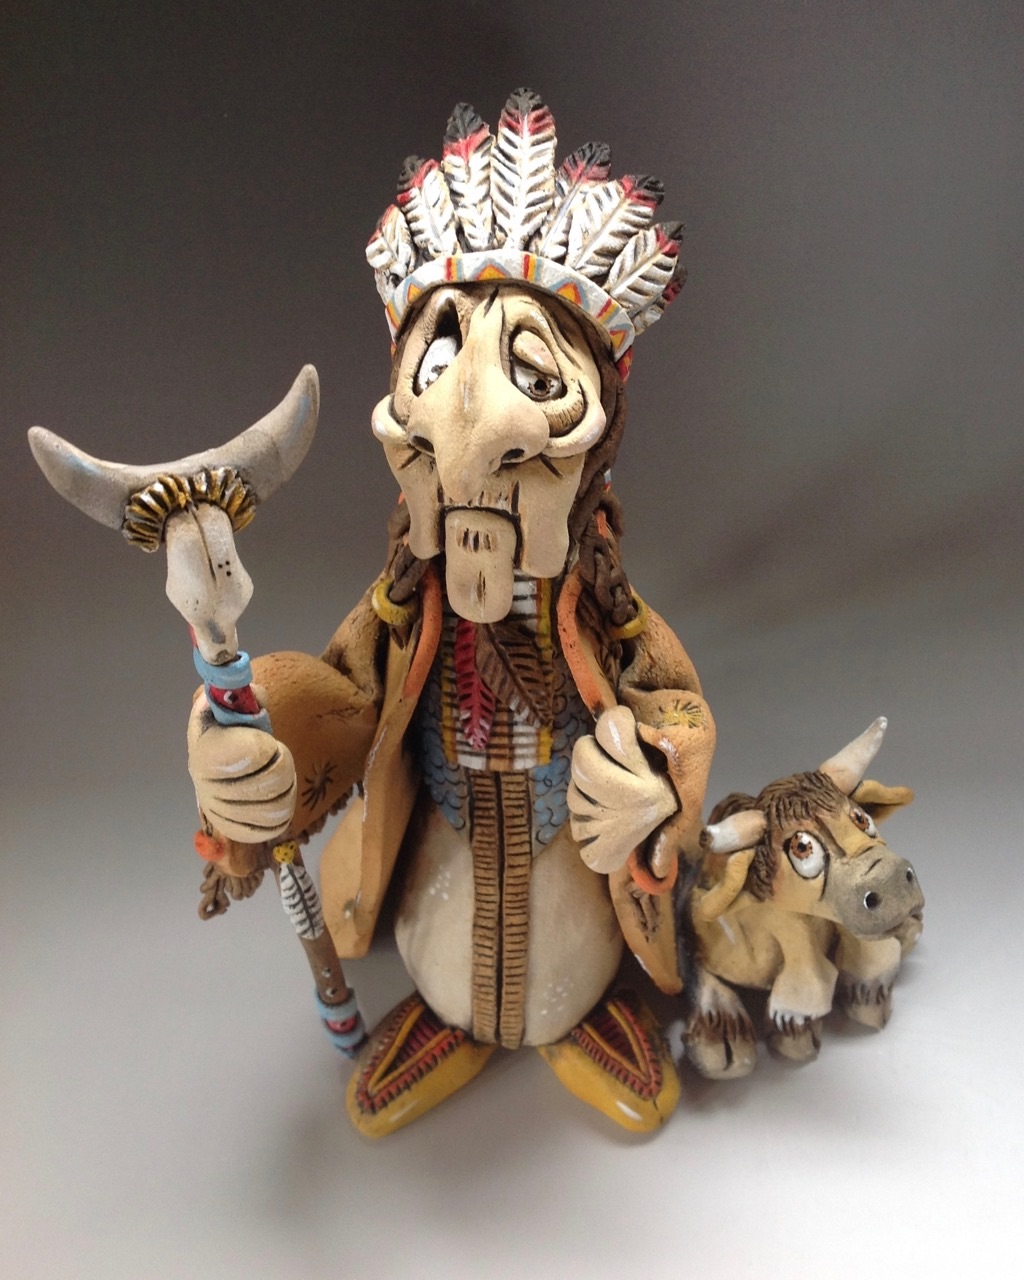 American Indian Chief Sculpture Ceramic Pottery